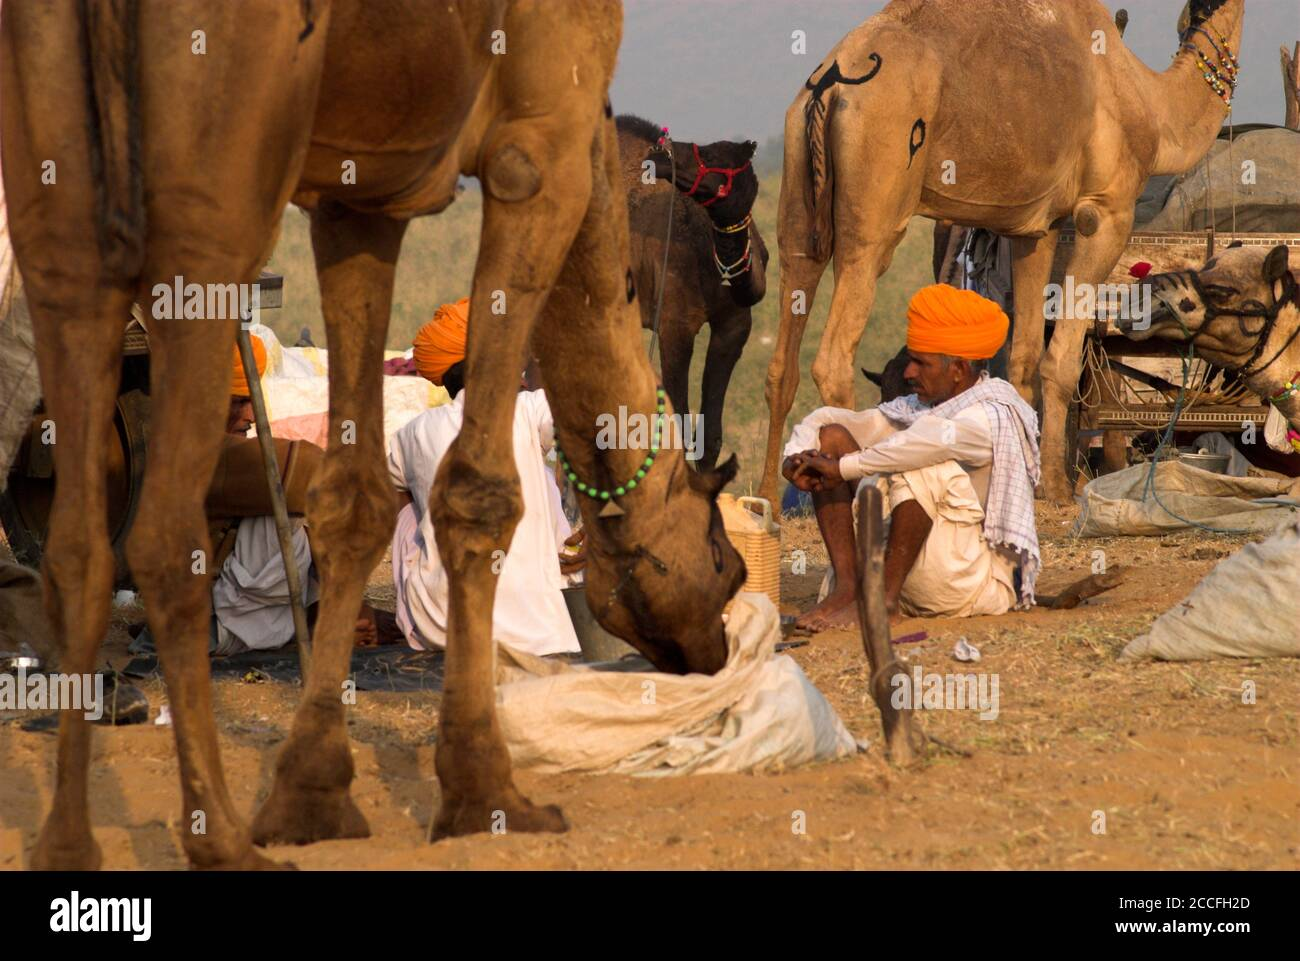 Campground scene at the camel fair in Pushkar, Rajasthan, India Stock Photo